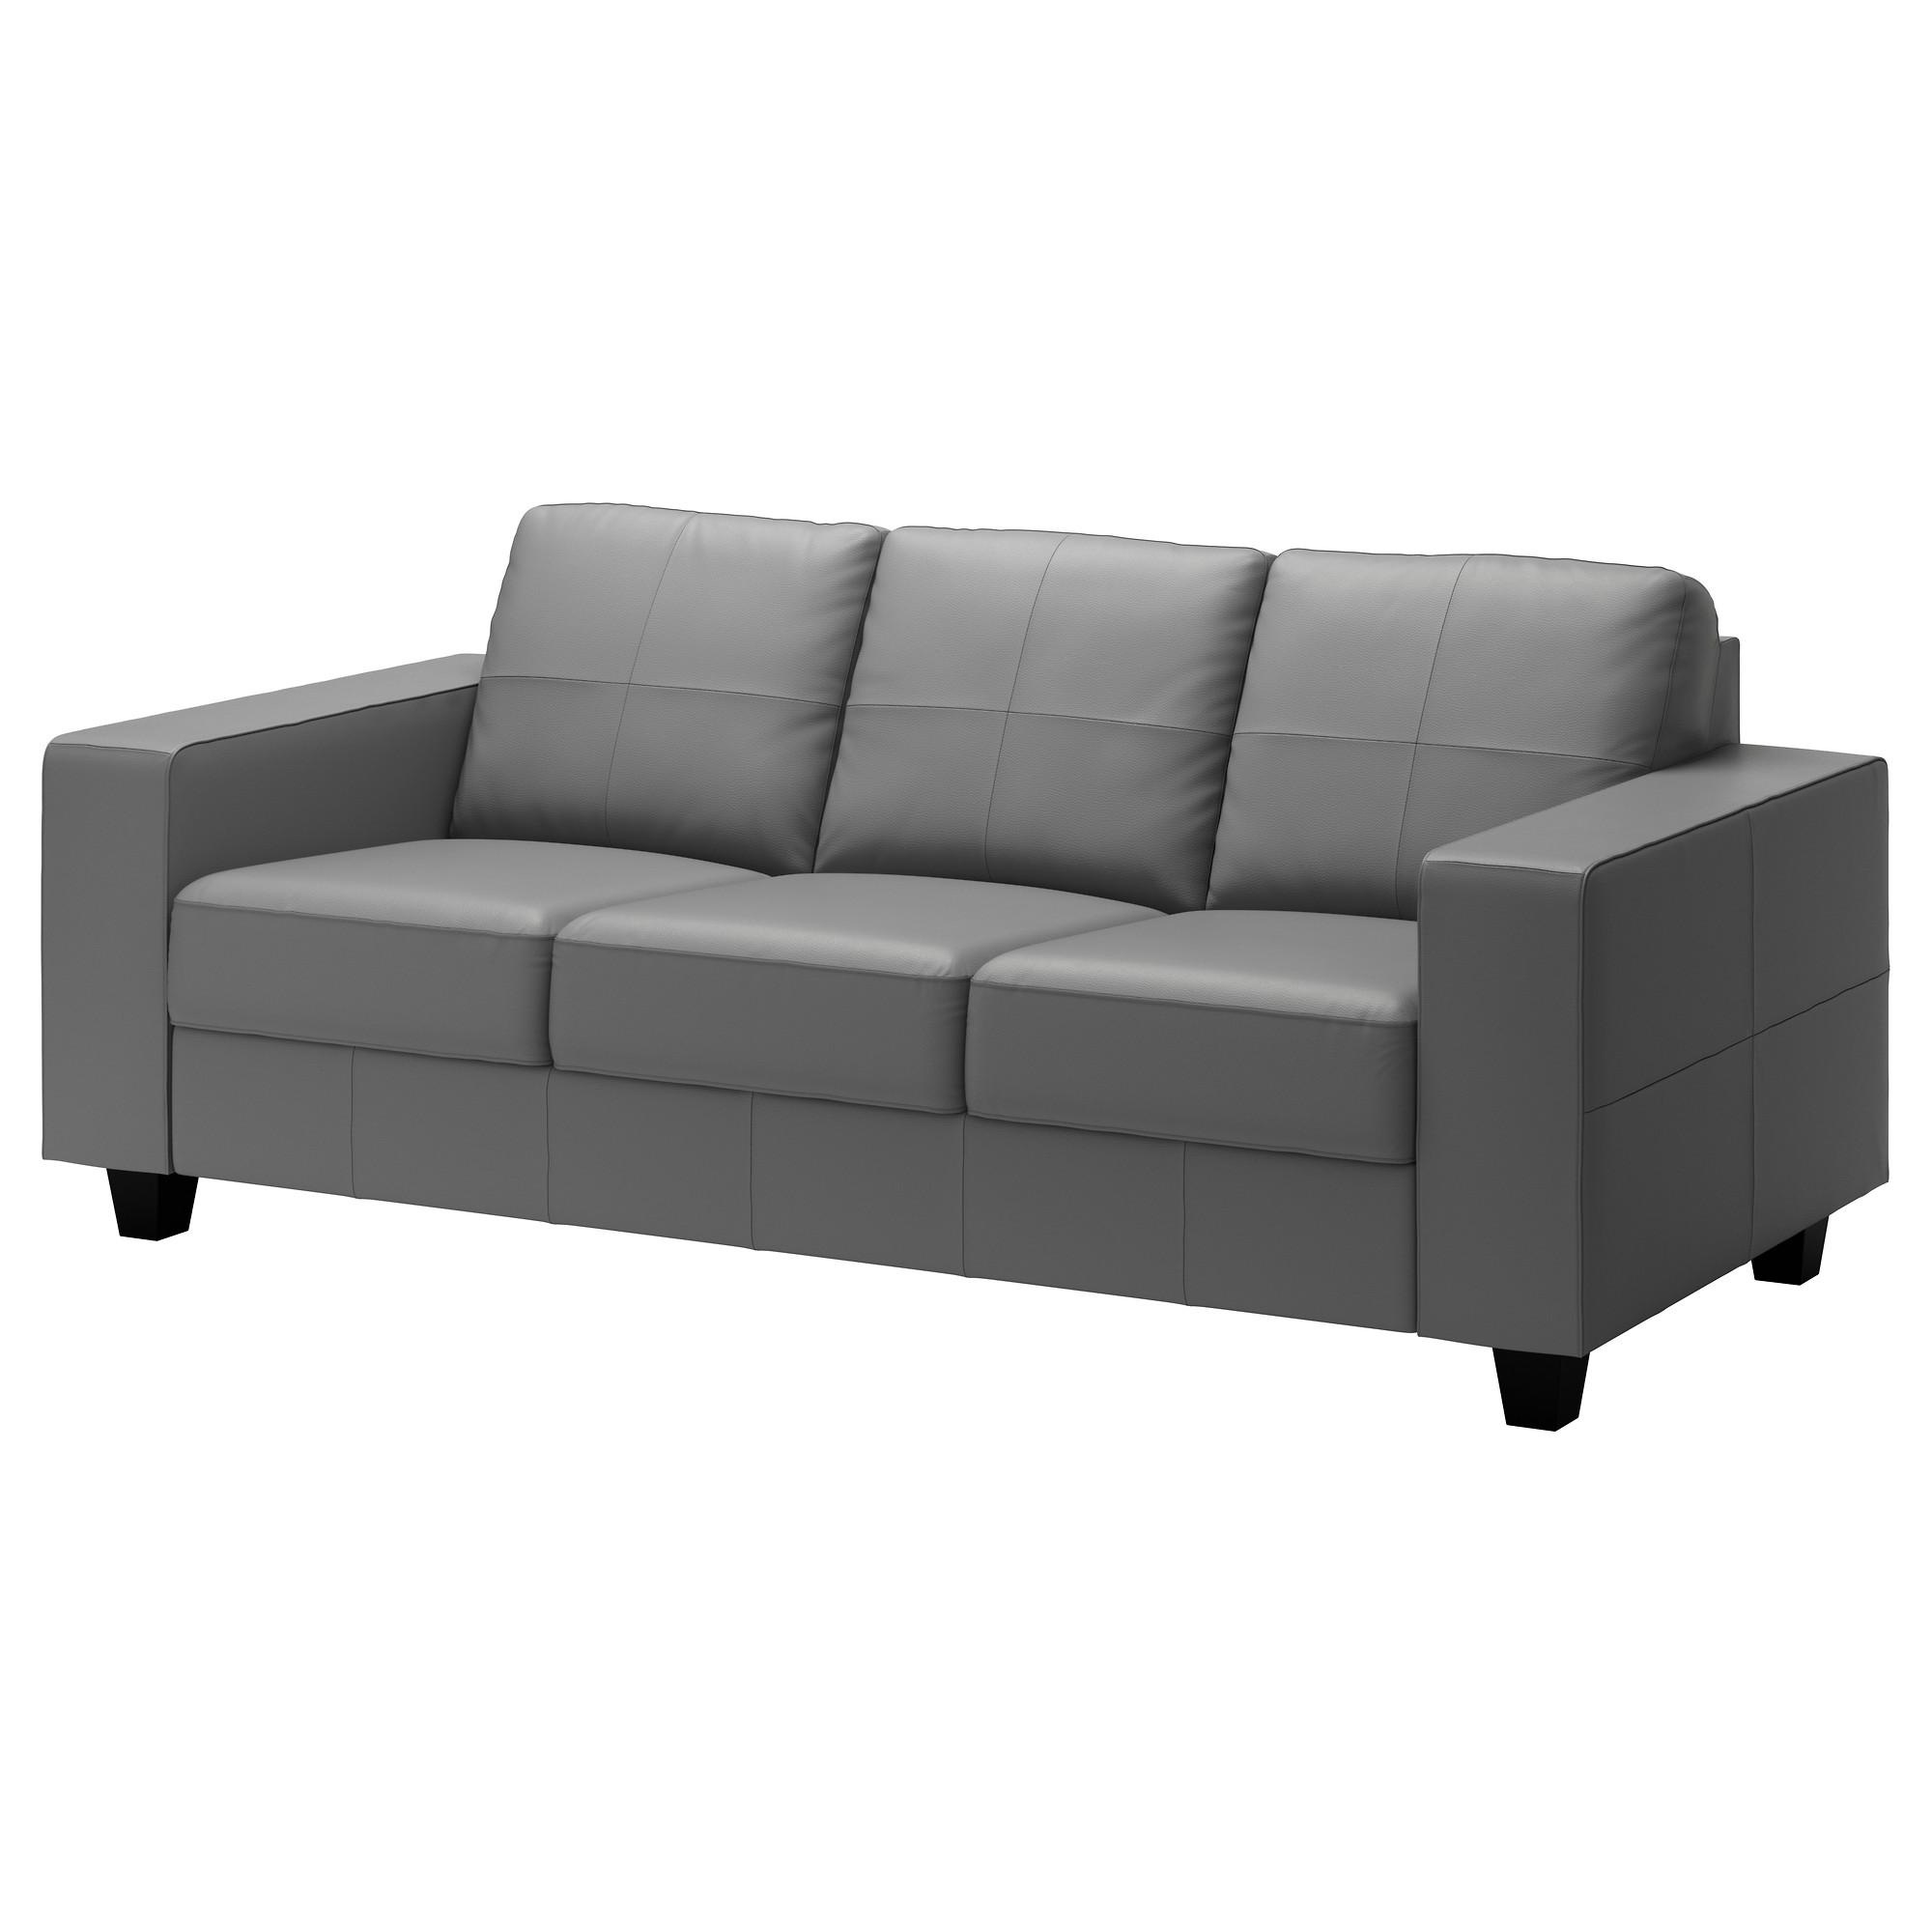 single chair sofa beds how to decorate a table 20 ideas of bed